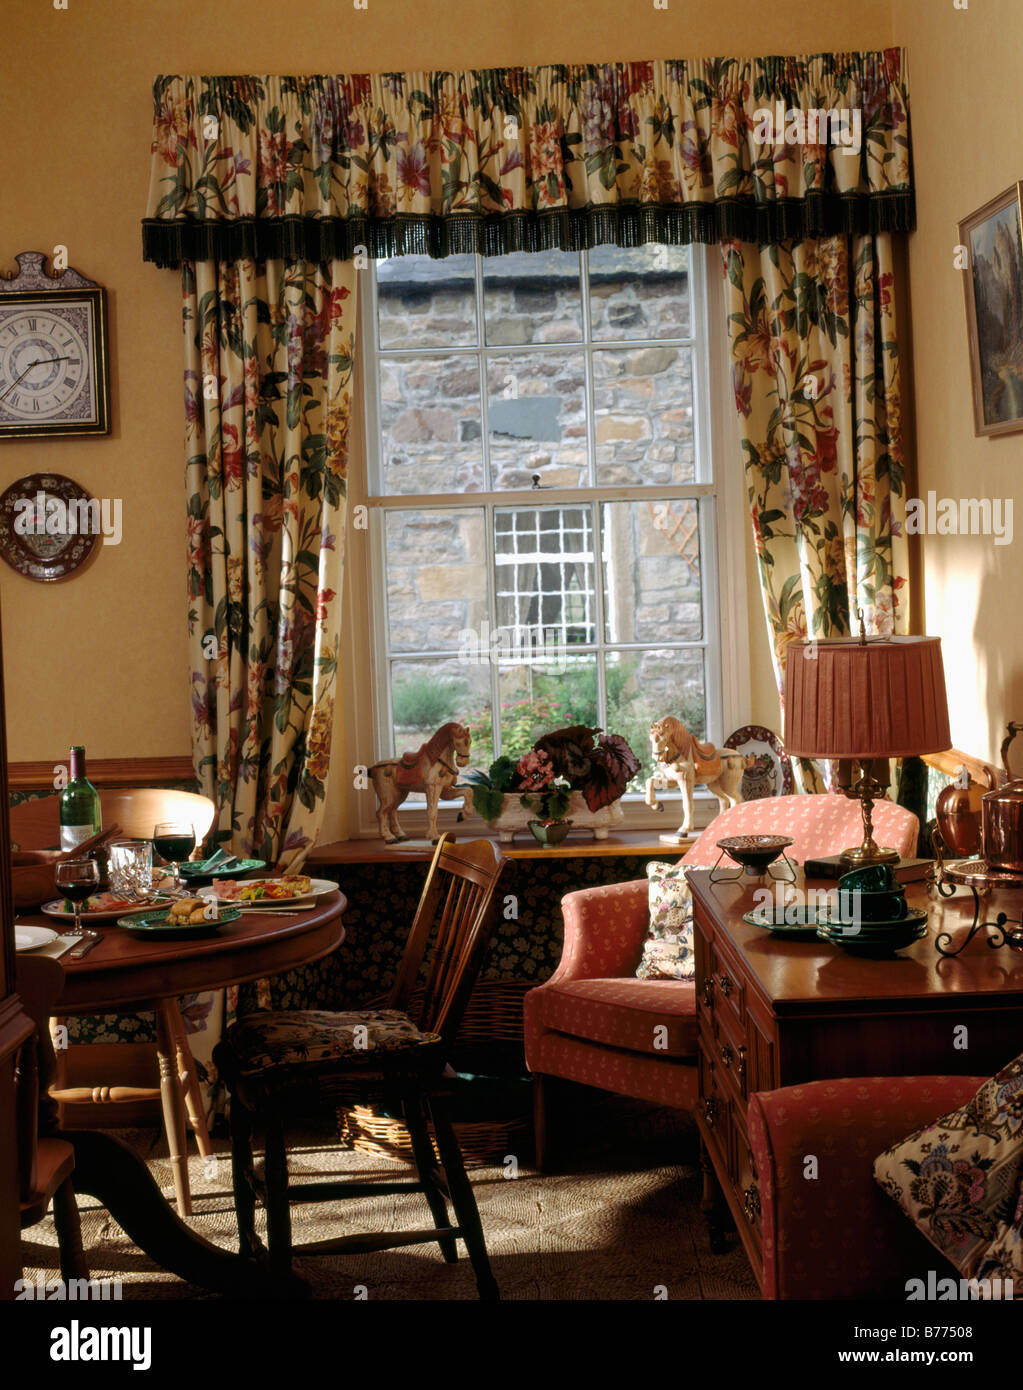 Floral Curtains And Pelmet At Window In Traditional Country Dining Room With Pink Armchair